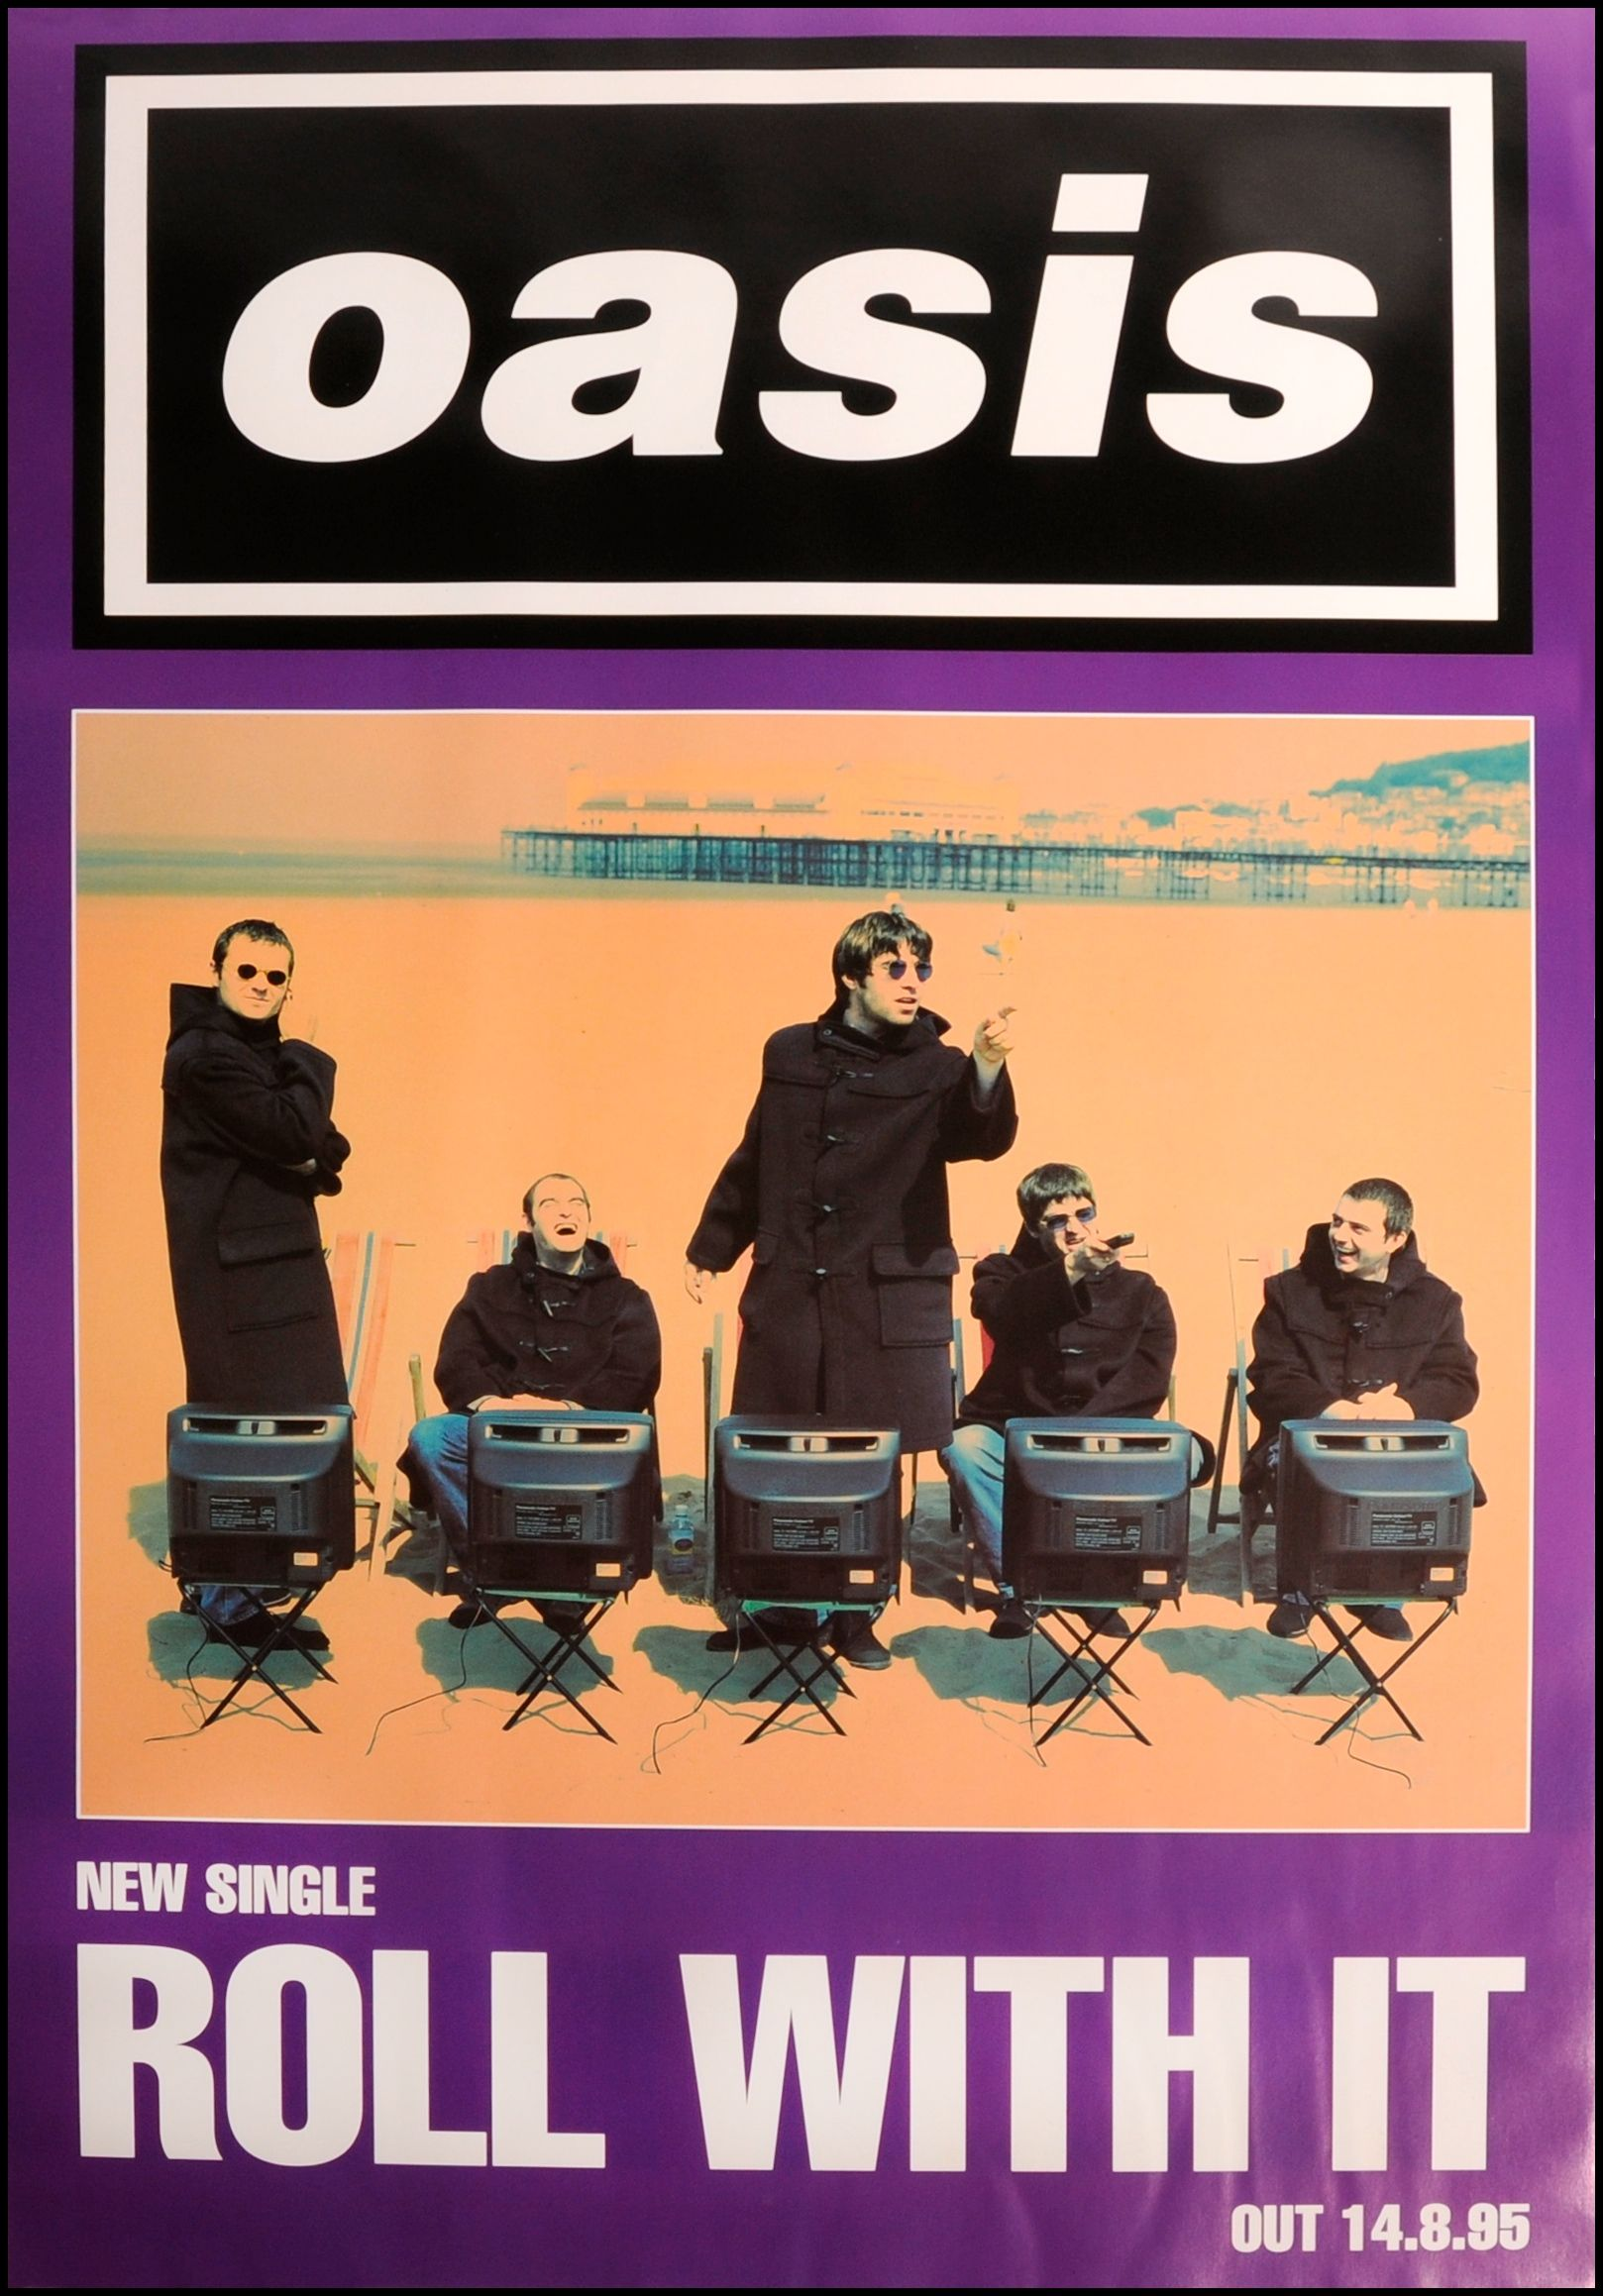 Oasis Poster Roll With It Music Poster Vintage Music Posters Music Album Covers